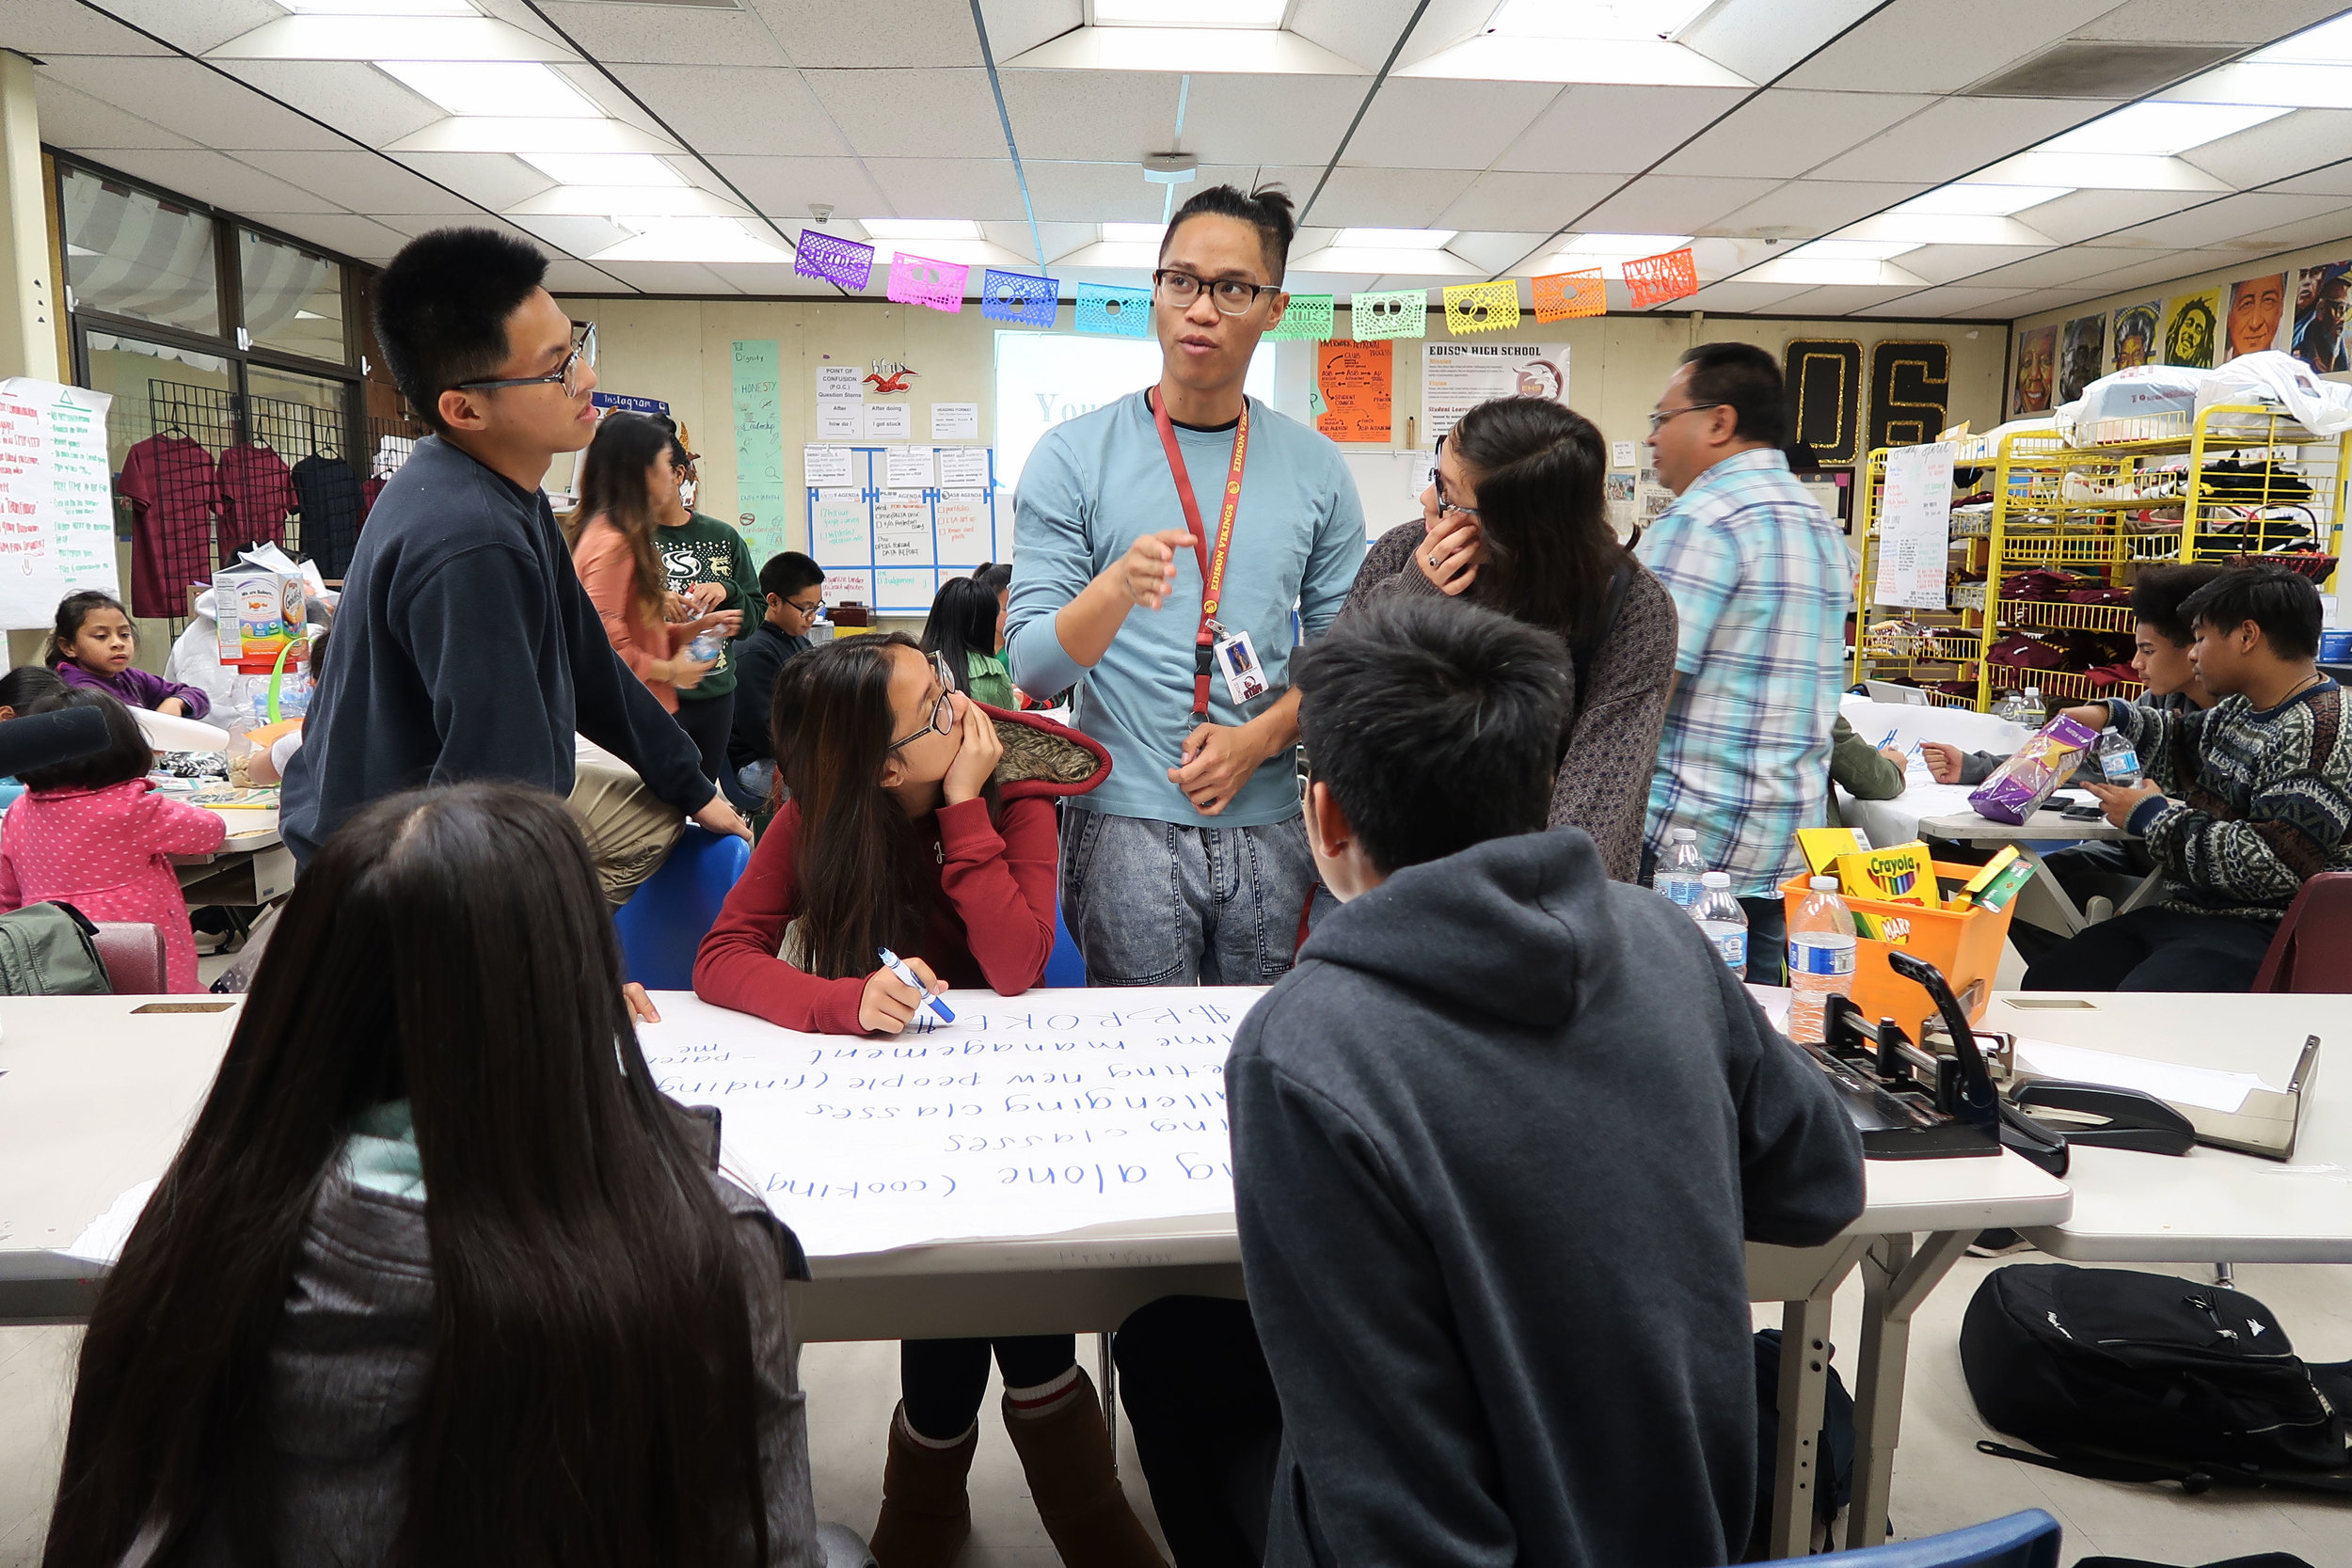 Little Manila Rising arts director Brian Batugo (center) teaches a group of students at the Little Manila After School Program at Edison High School in Stockton, California. Photo by Patrick Epino.